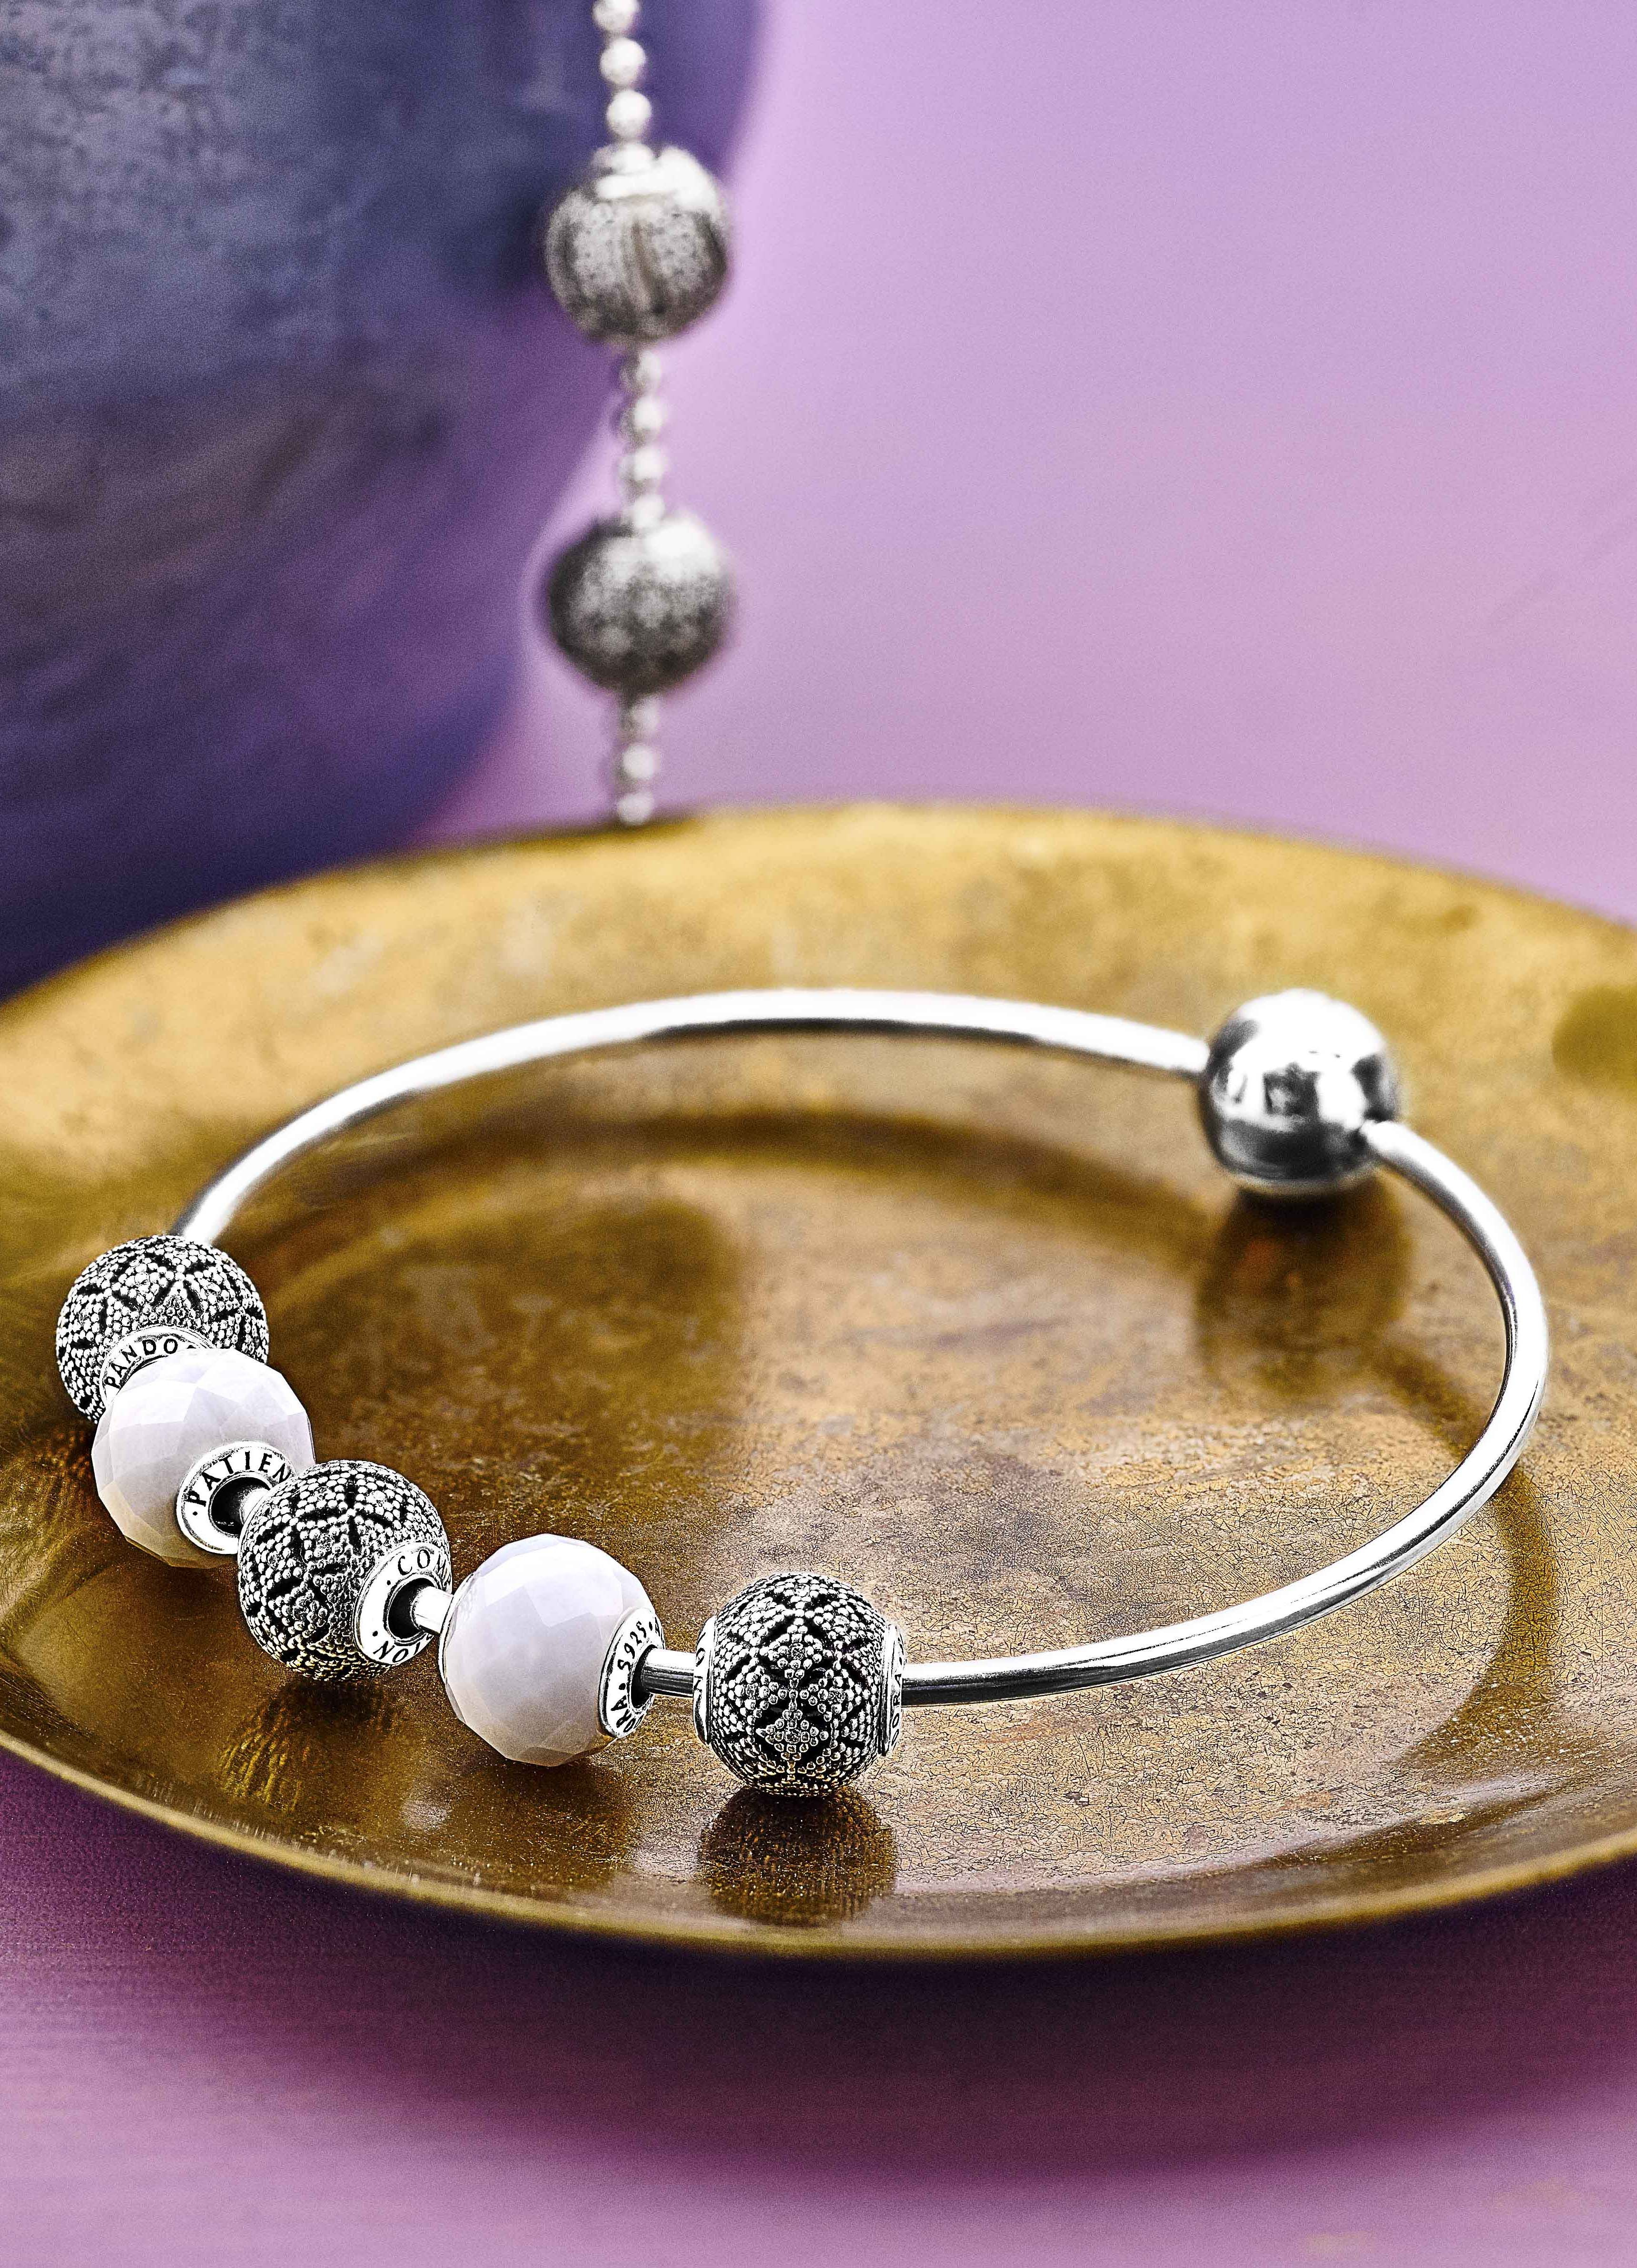 Style The Pandora Essence Collection Bangle With Silver And White Charms  For A Modern Bohemian Look